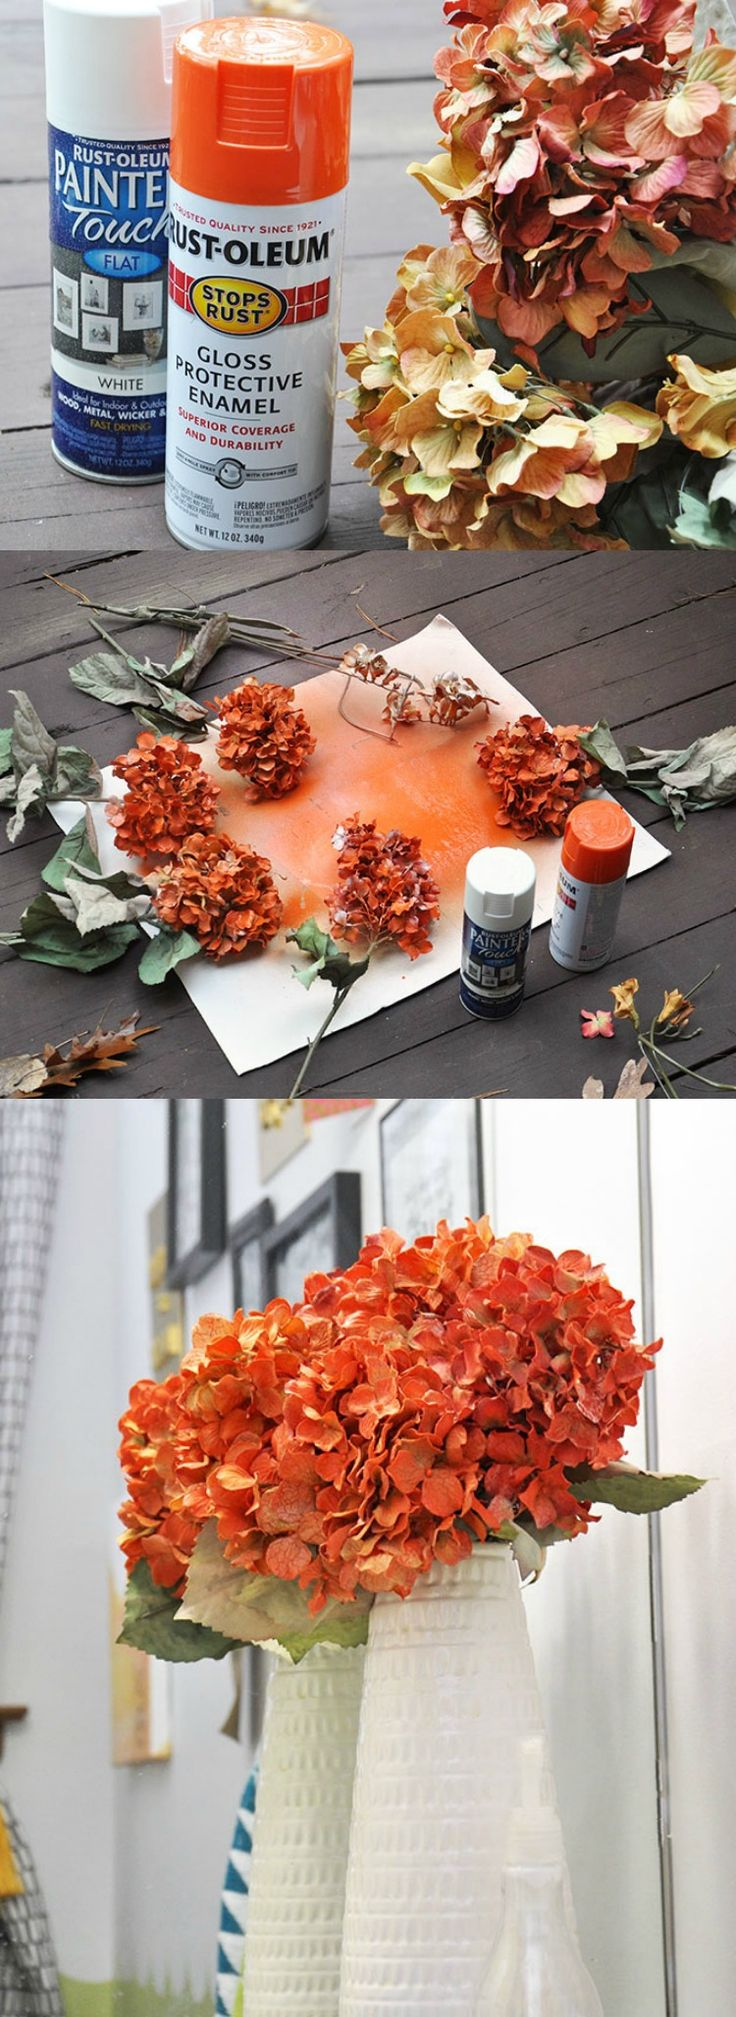 This is the easy way to paint fake flowers and make them be the color that you want. Reuse what you have and save money!